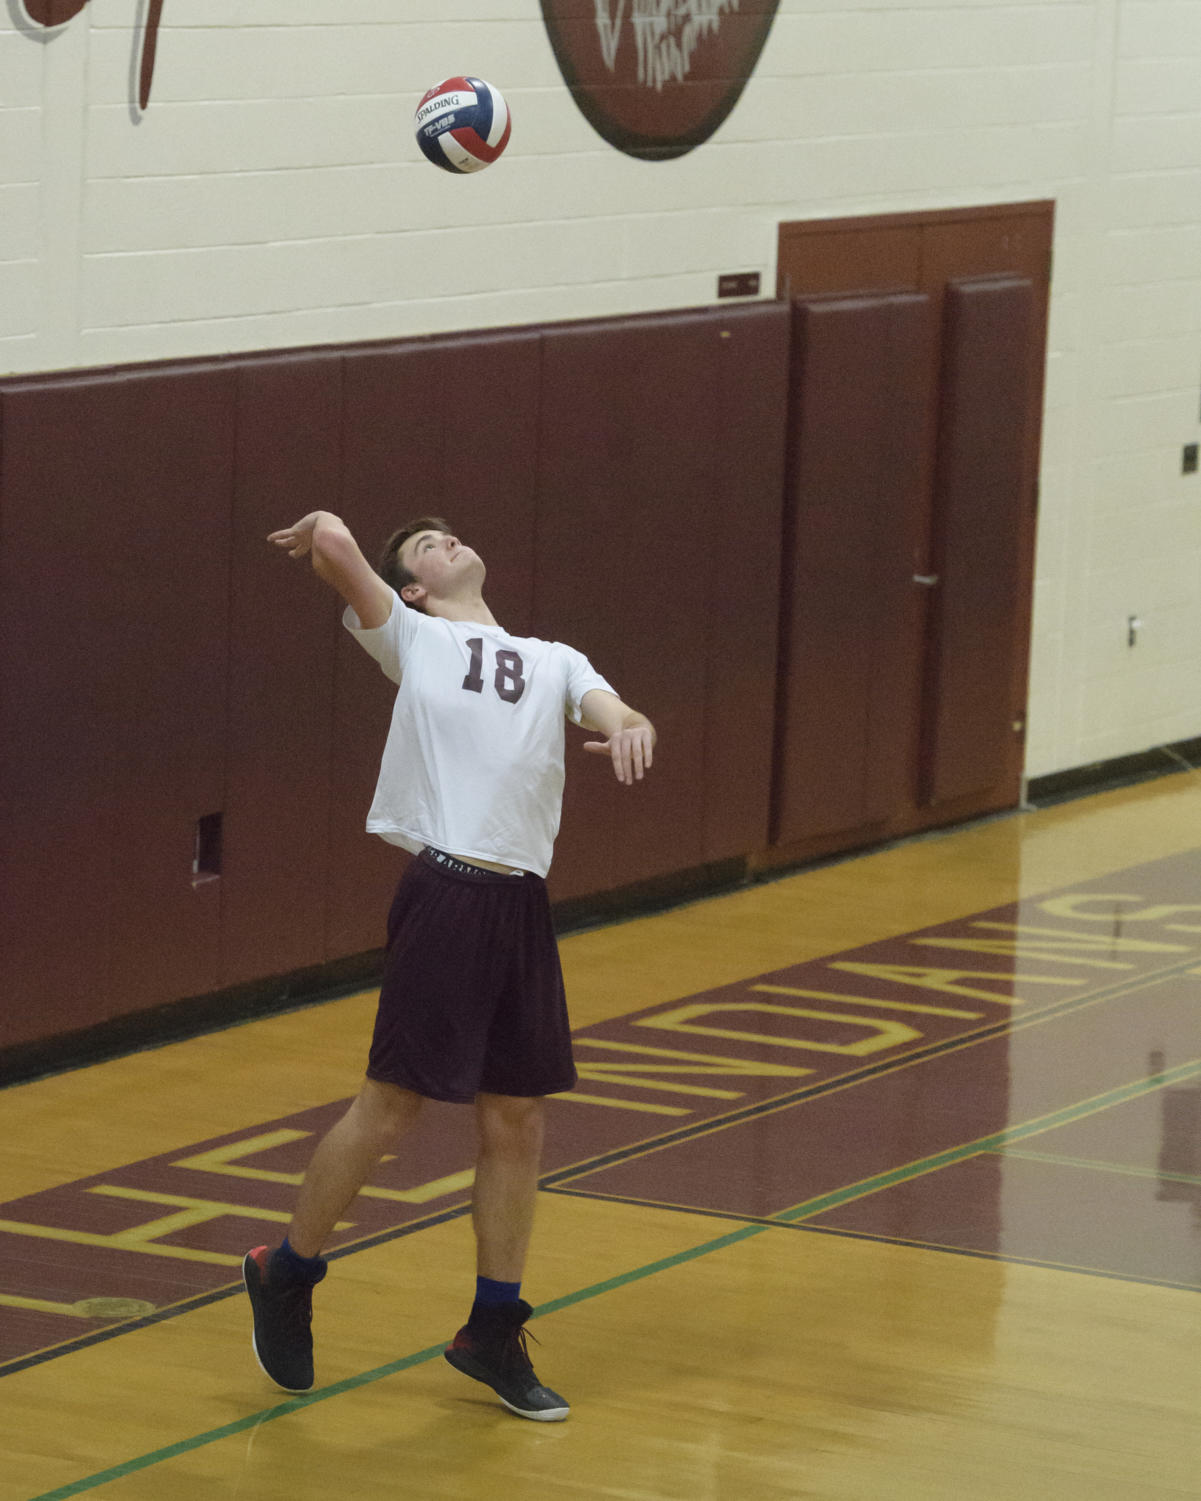 Serving a win-- Junior Scott Tuohy serves the ball during a recent match. Tuohy is a middle hitter, and has been playing on the boys volleyball for three years.